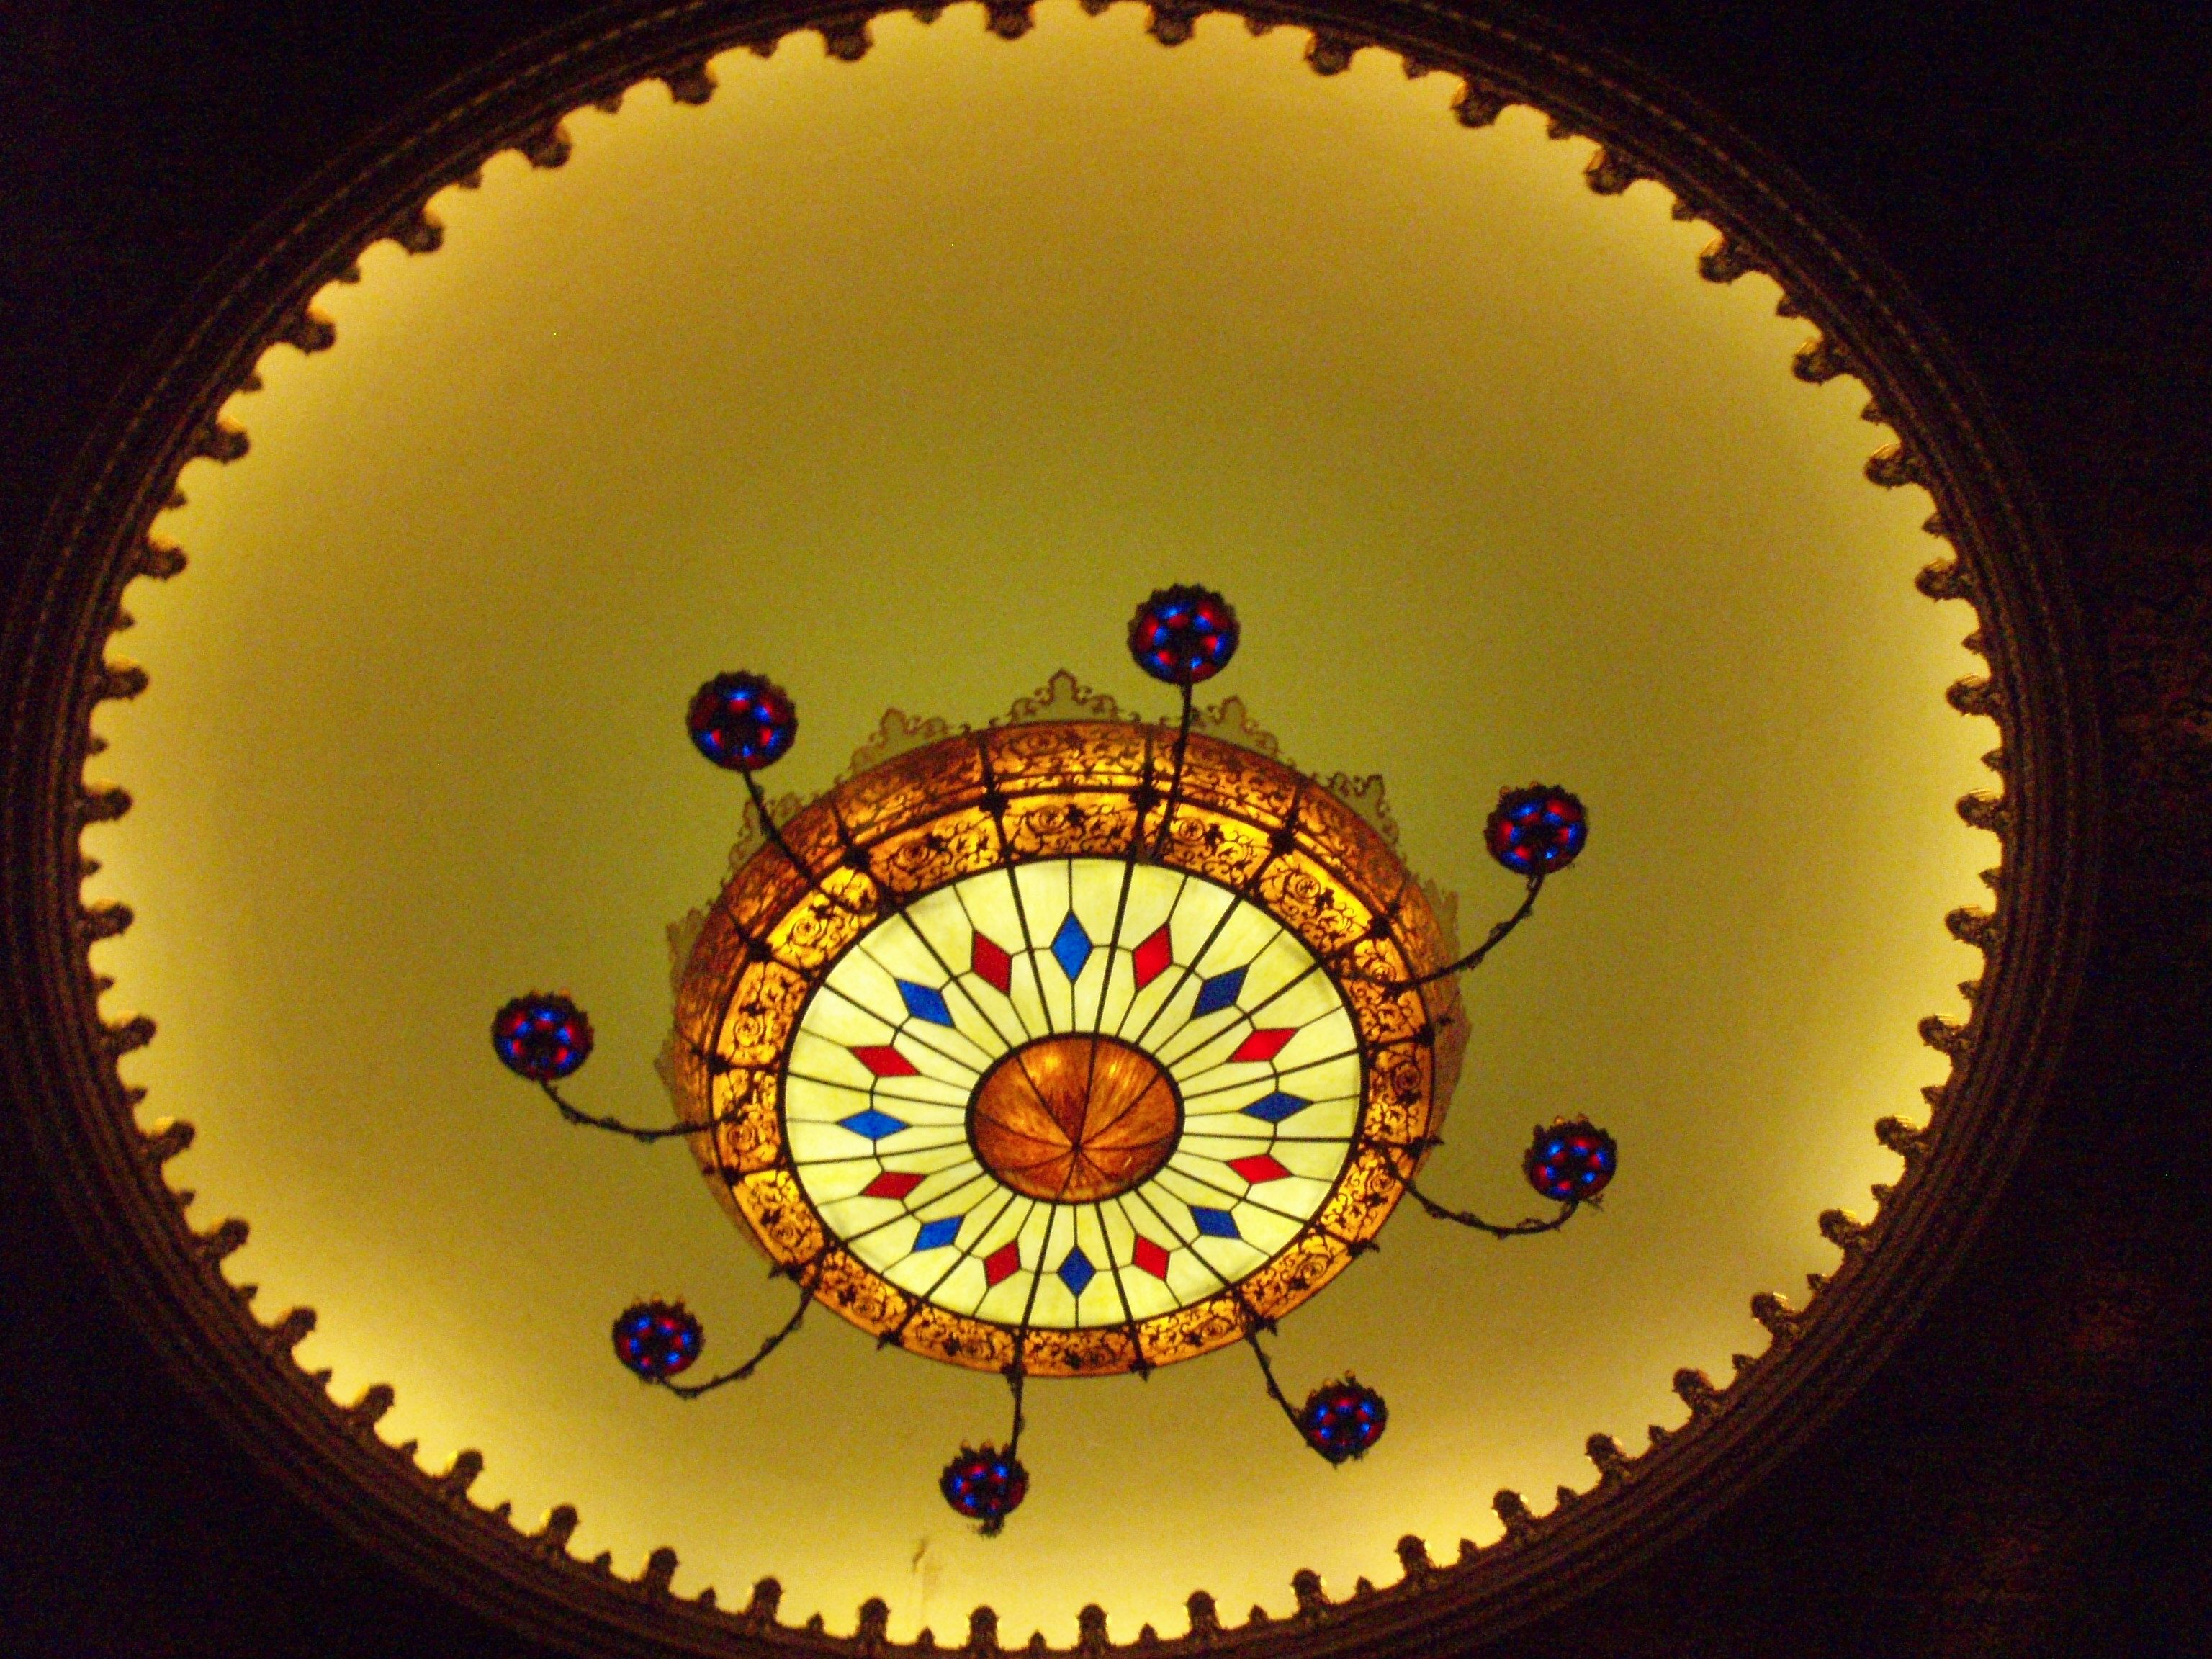 The worlds largest chandelier made by the meyda tiffany chandelier the worlds largest chandelier made by the meyda tiffany chandelier company now adorns the stanley theatre aloadofball Image collections